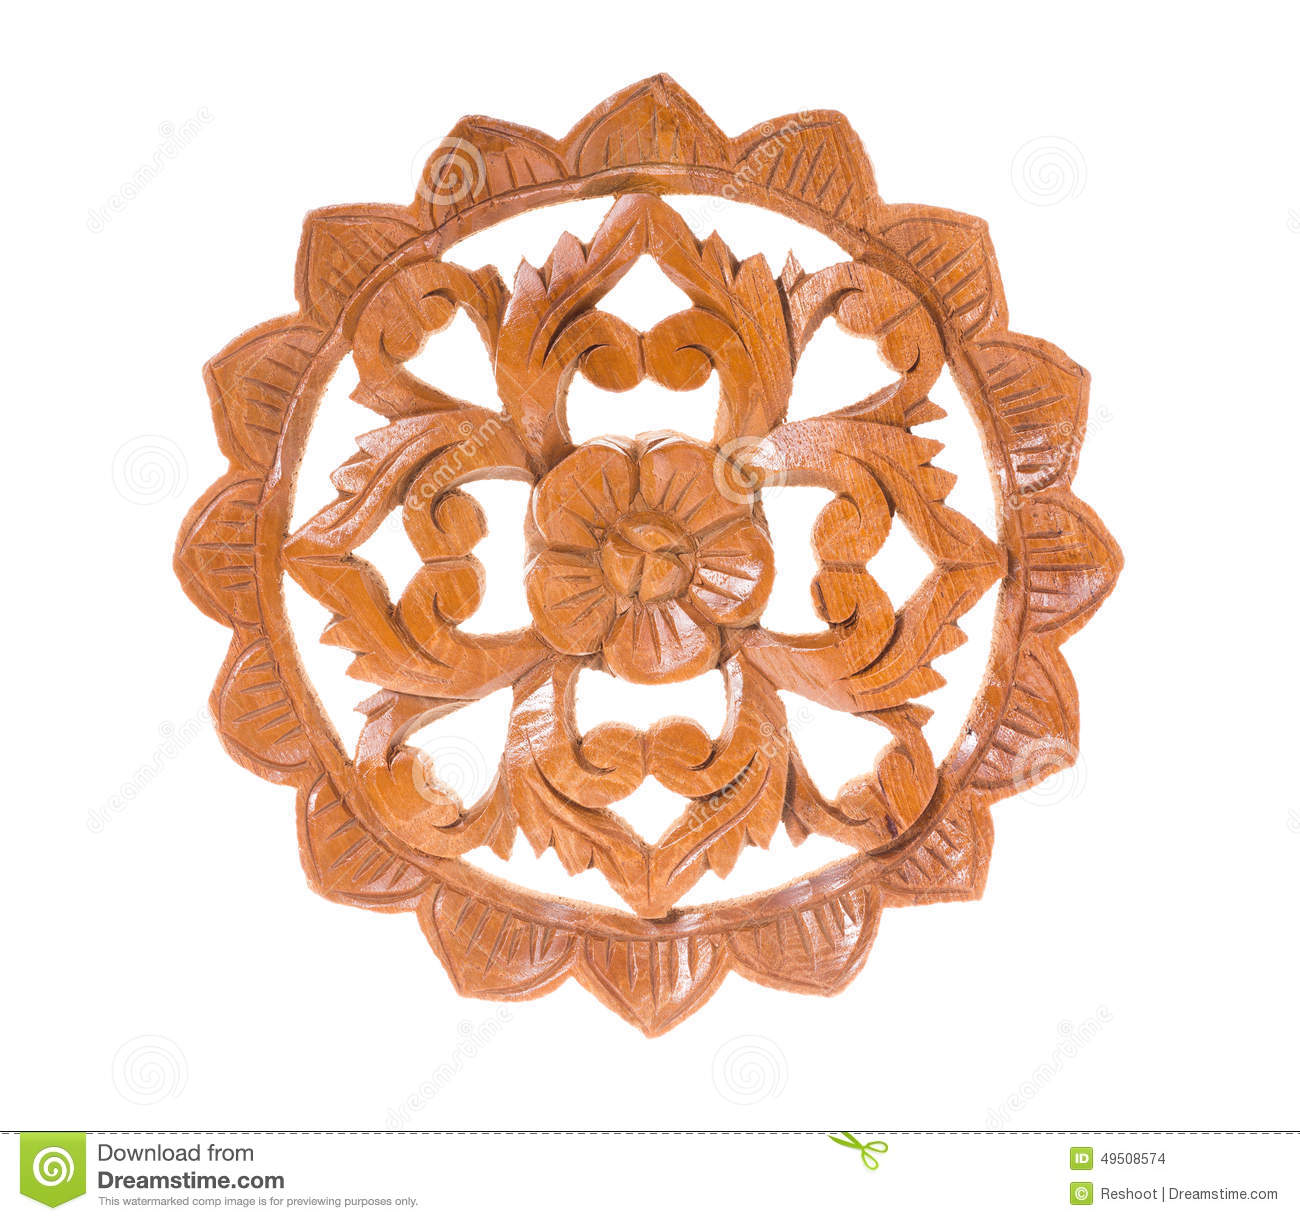 Teak wood carving stock photo  Image of carve, wooden - 49508574